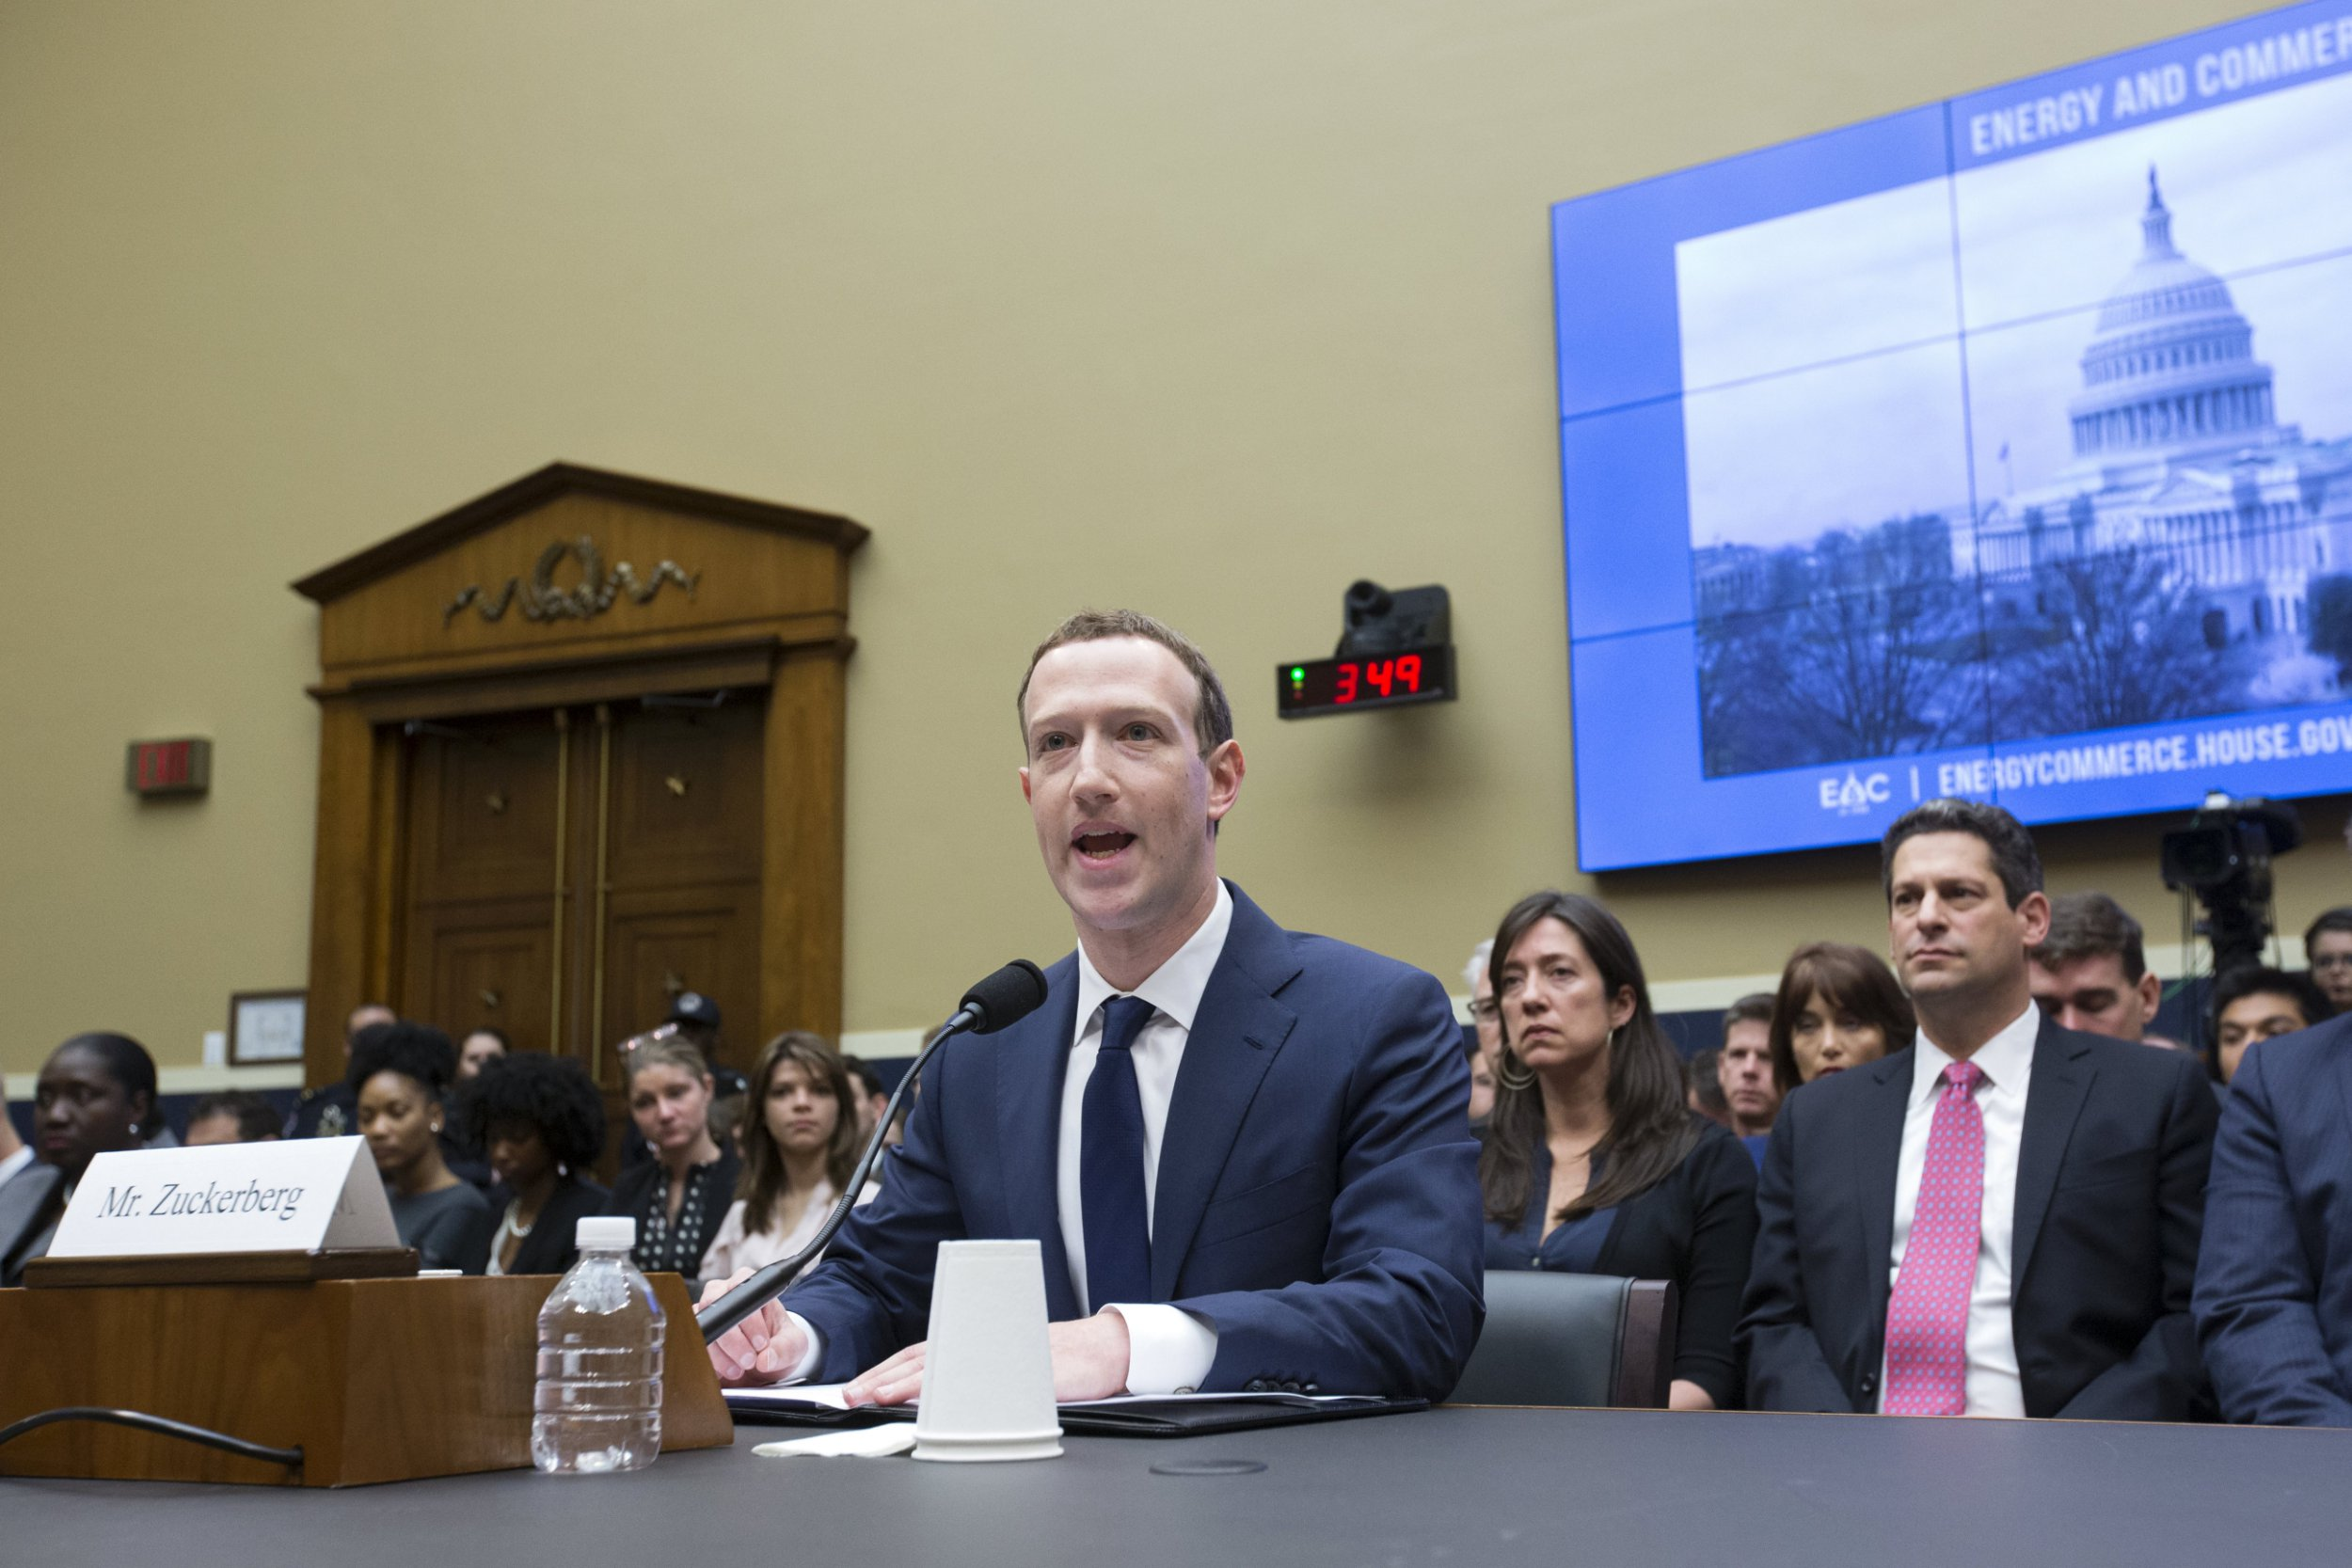 epa06661596 CEO of Facebook Mark Zuckerberg (C) takes his seat to testify before the House Energy and Commerce Committee hearing on 'Facebook: Transparency and Use of Consumer Data' on Capitol Hill in Washington, DC, USA, 11 April 2018. Zuckerberg is testifying before the second of two Congressional hearings this week regarding Facebook allowing third-party applications to collect the data of its users without their permission and for the company's response to Russian interference in the 2016 US presidential election. EPA/MICHAEL REYNOLDS